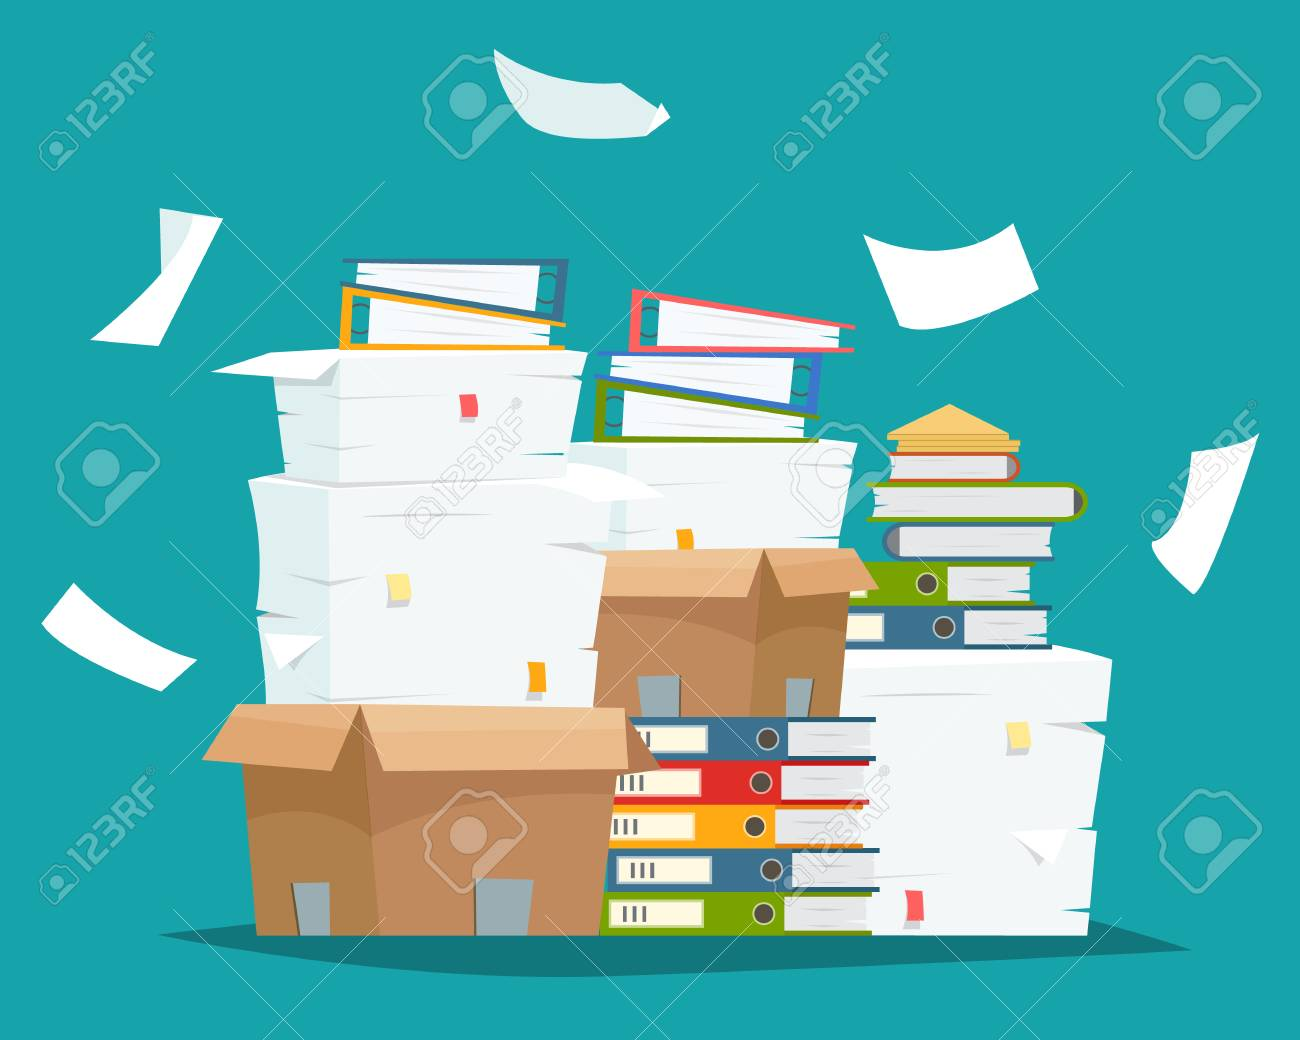 Pile of paper documents and file folders in carton boxes. - 97873319